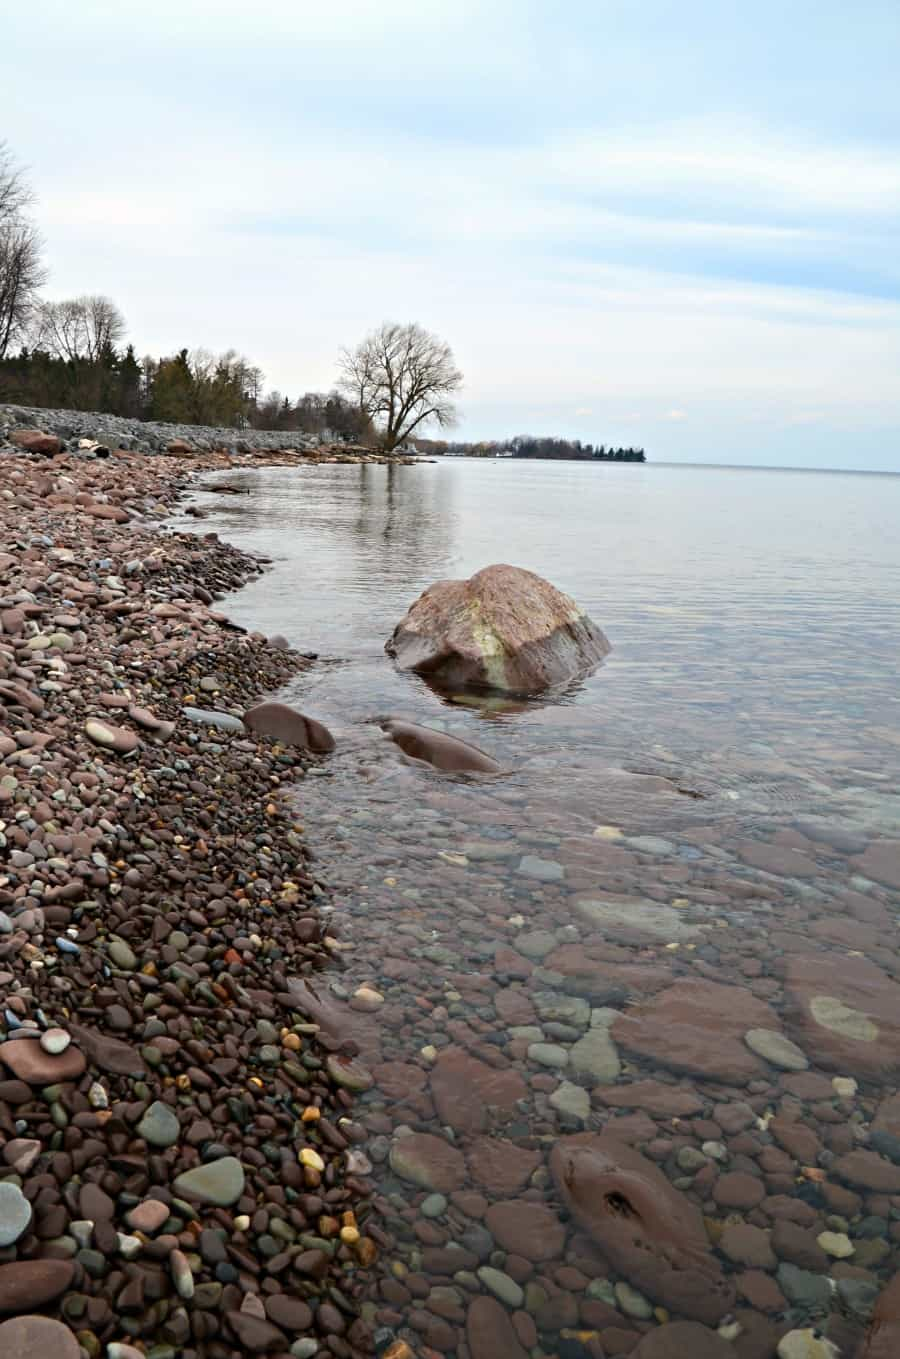 Beach Glass B Foreman Park Lake Ontario NY